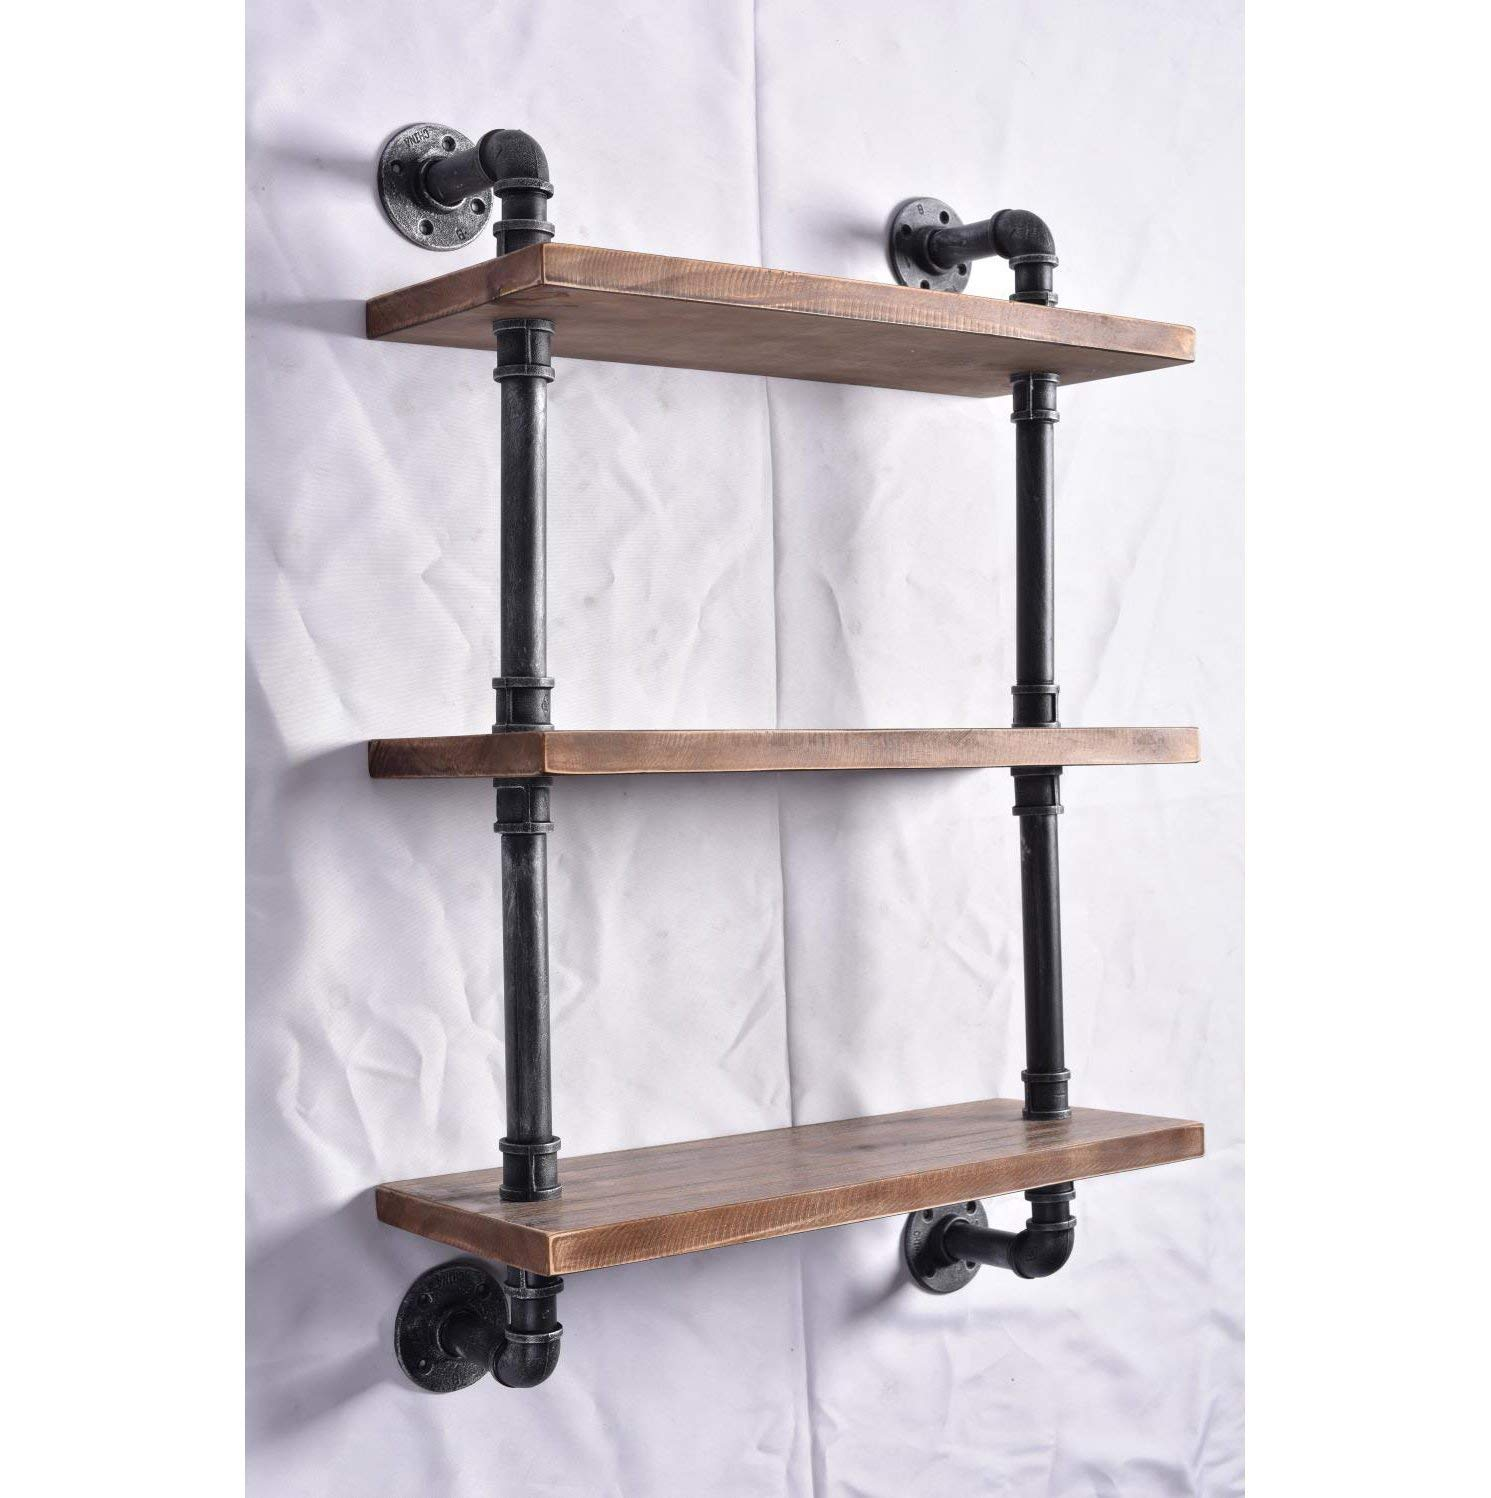 "Diwhy Industrial Pipe Shelving Bookshelf Rustic Modern Wood Ladder Storage Shelf 3 Tiers Retro Wall Mount Pipe Dia 32mm Design DIY Shelving (Silver, L 24"") - 【Retro Style】:Rustic industrial pipe shelf in black finish.Iron pipes and reclaimed real wood composition in vintage style.Storage and decorations.It can also be used outdoors.Extensively anti-rust treatment. - Electroplated finish. 【Size】:Made from quality metal pipe and pine wood. Overall size: length 24in x depth 10in x height 39in.Board size: length 24in x depth 10in x thickness 1.18in.Water pipe diameter: 1.26in, Overall Product Weight:20 lb . 【Multi-functional】:The floating shelves are versatile, such as bathroom accessories, towel holder, bookcase, spice racks. - wall-shelves, living-room-furniture, living-room - 71MkKWooSVL -"